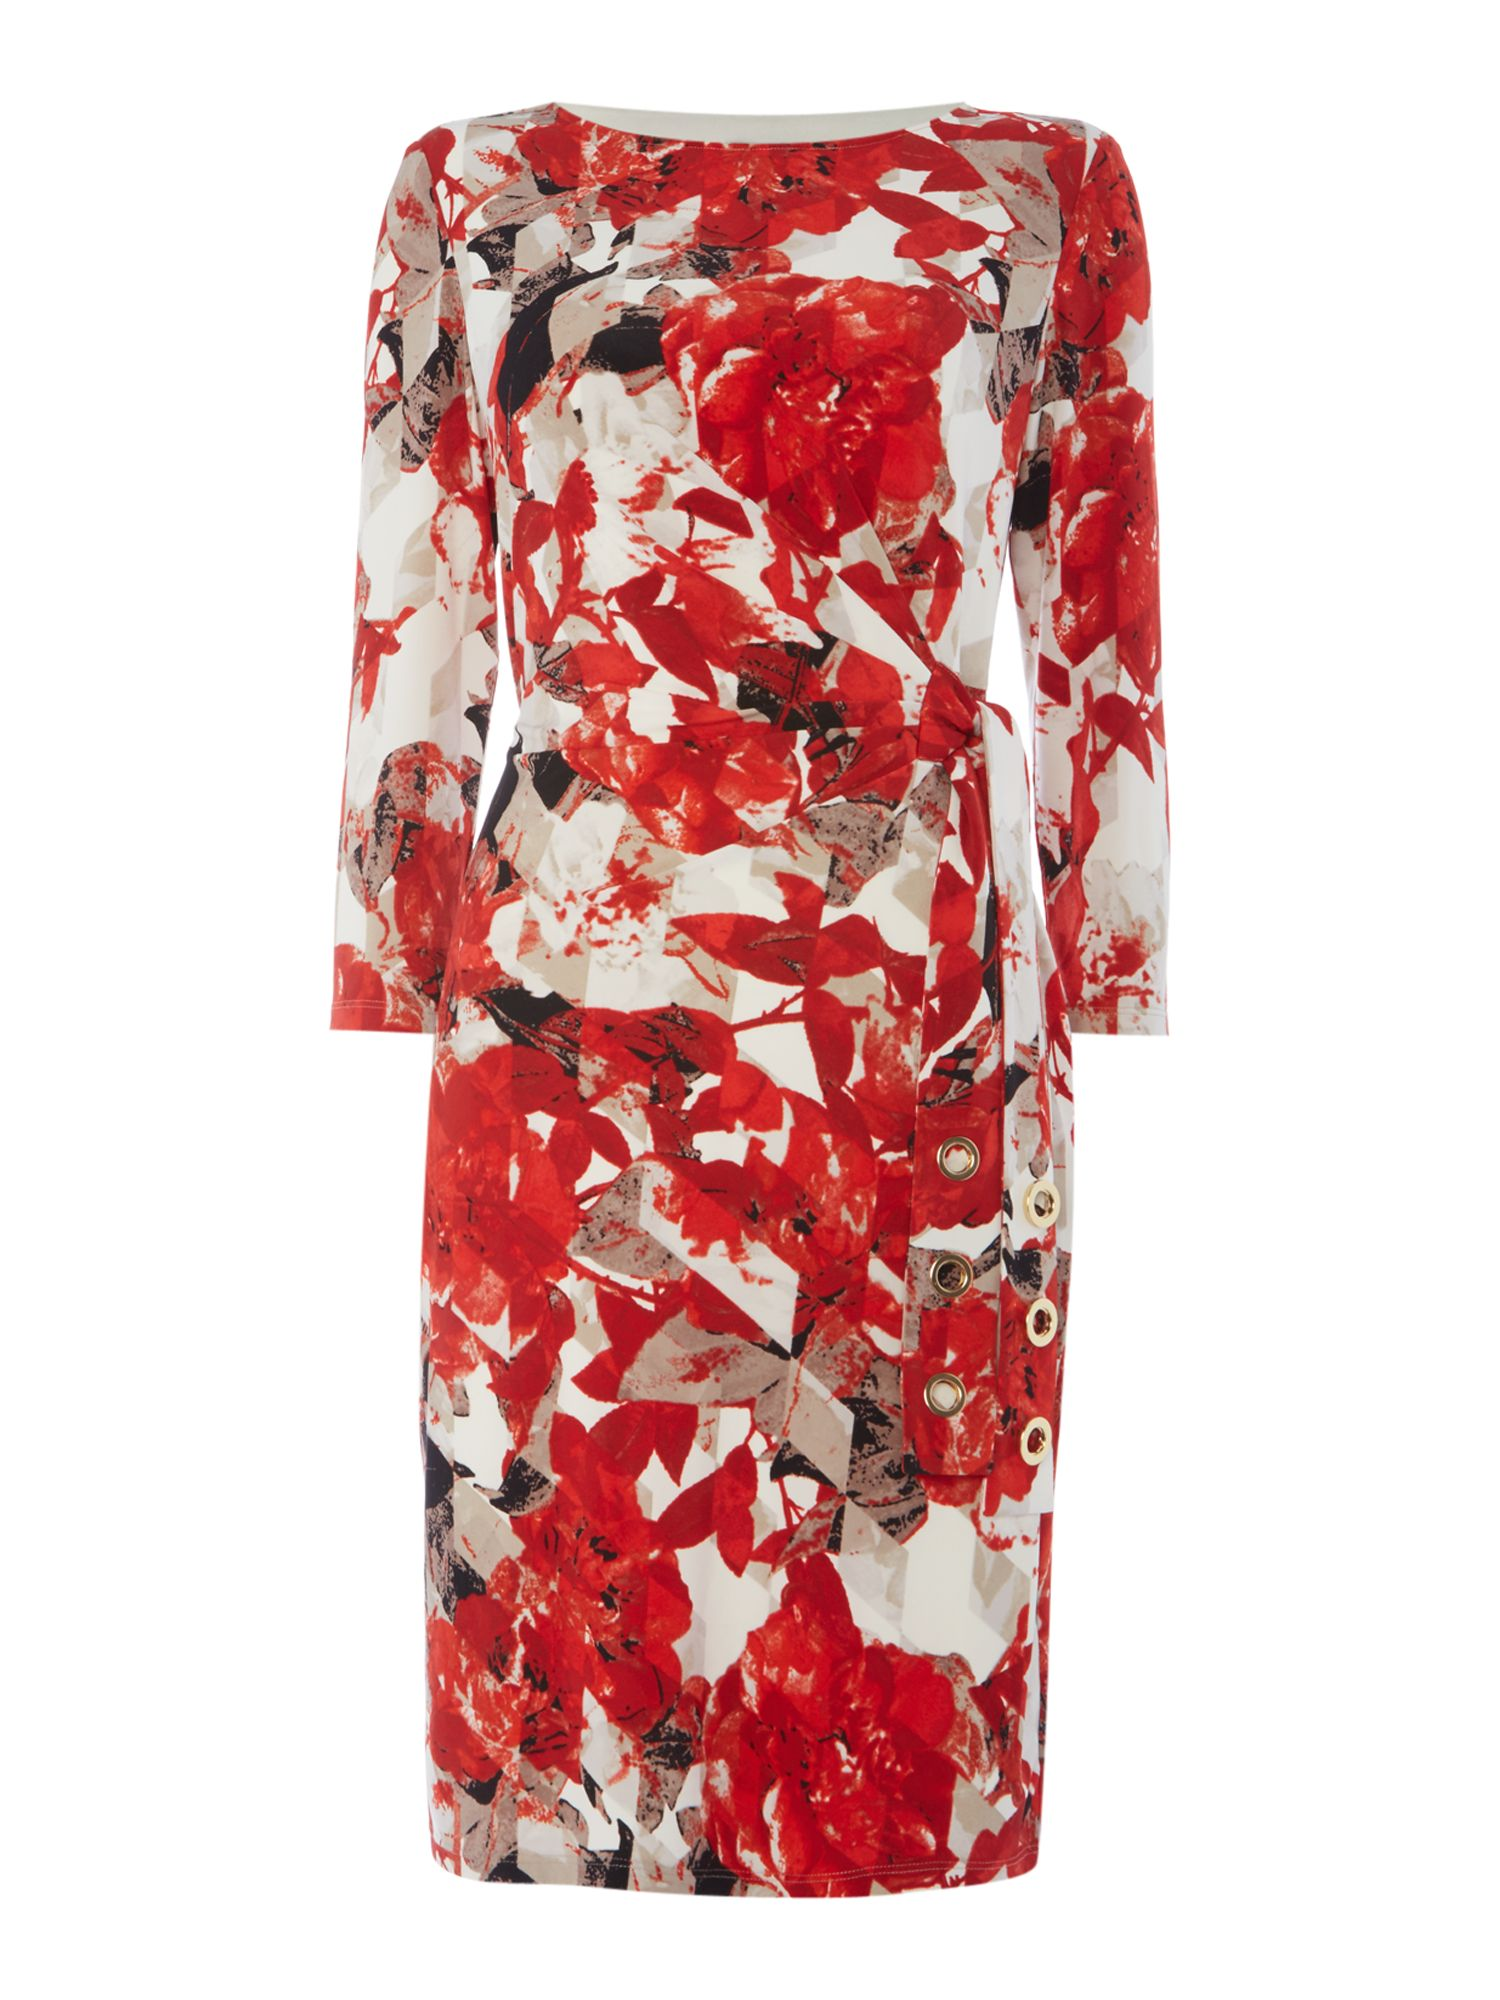 Episode Floral printed dress with tie, Graphic Floral Print